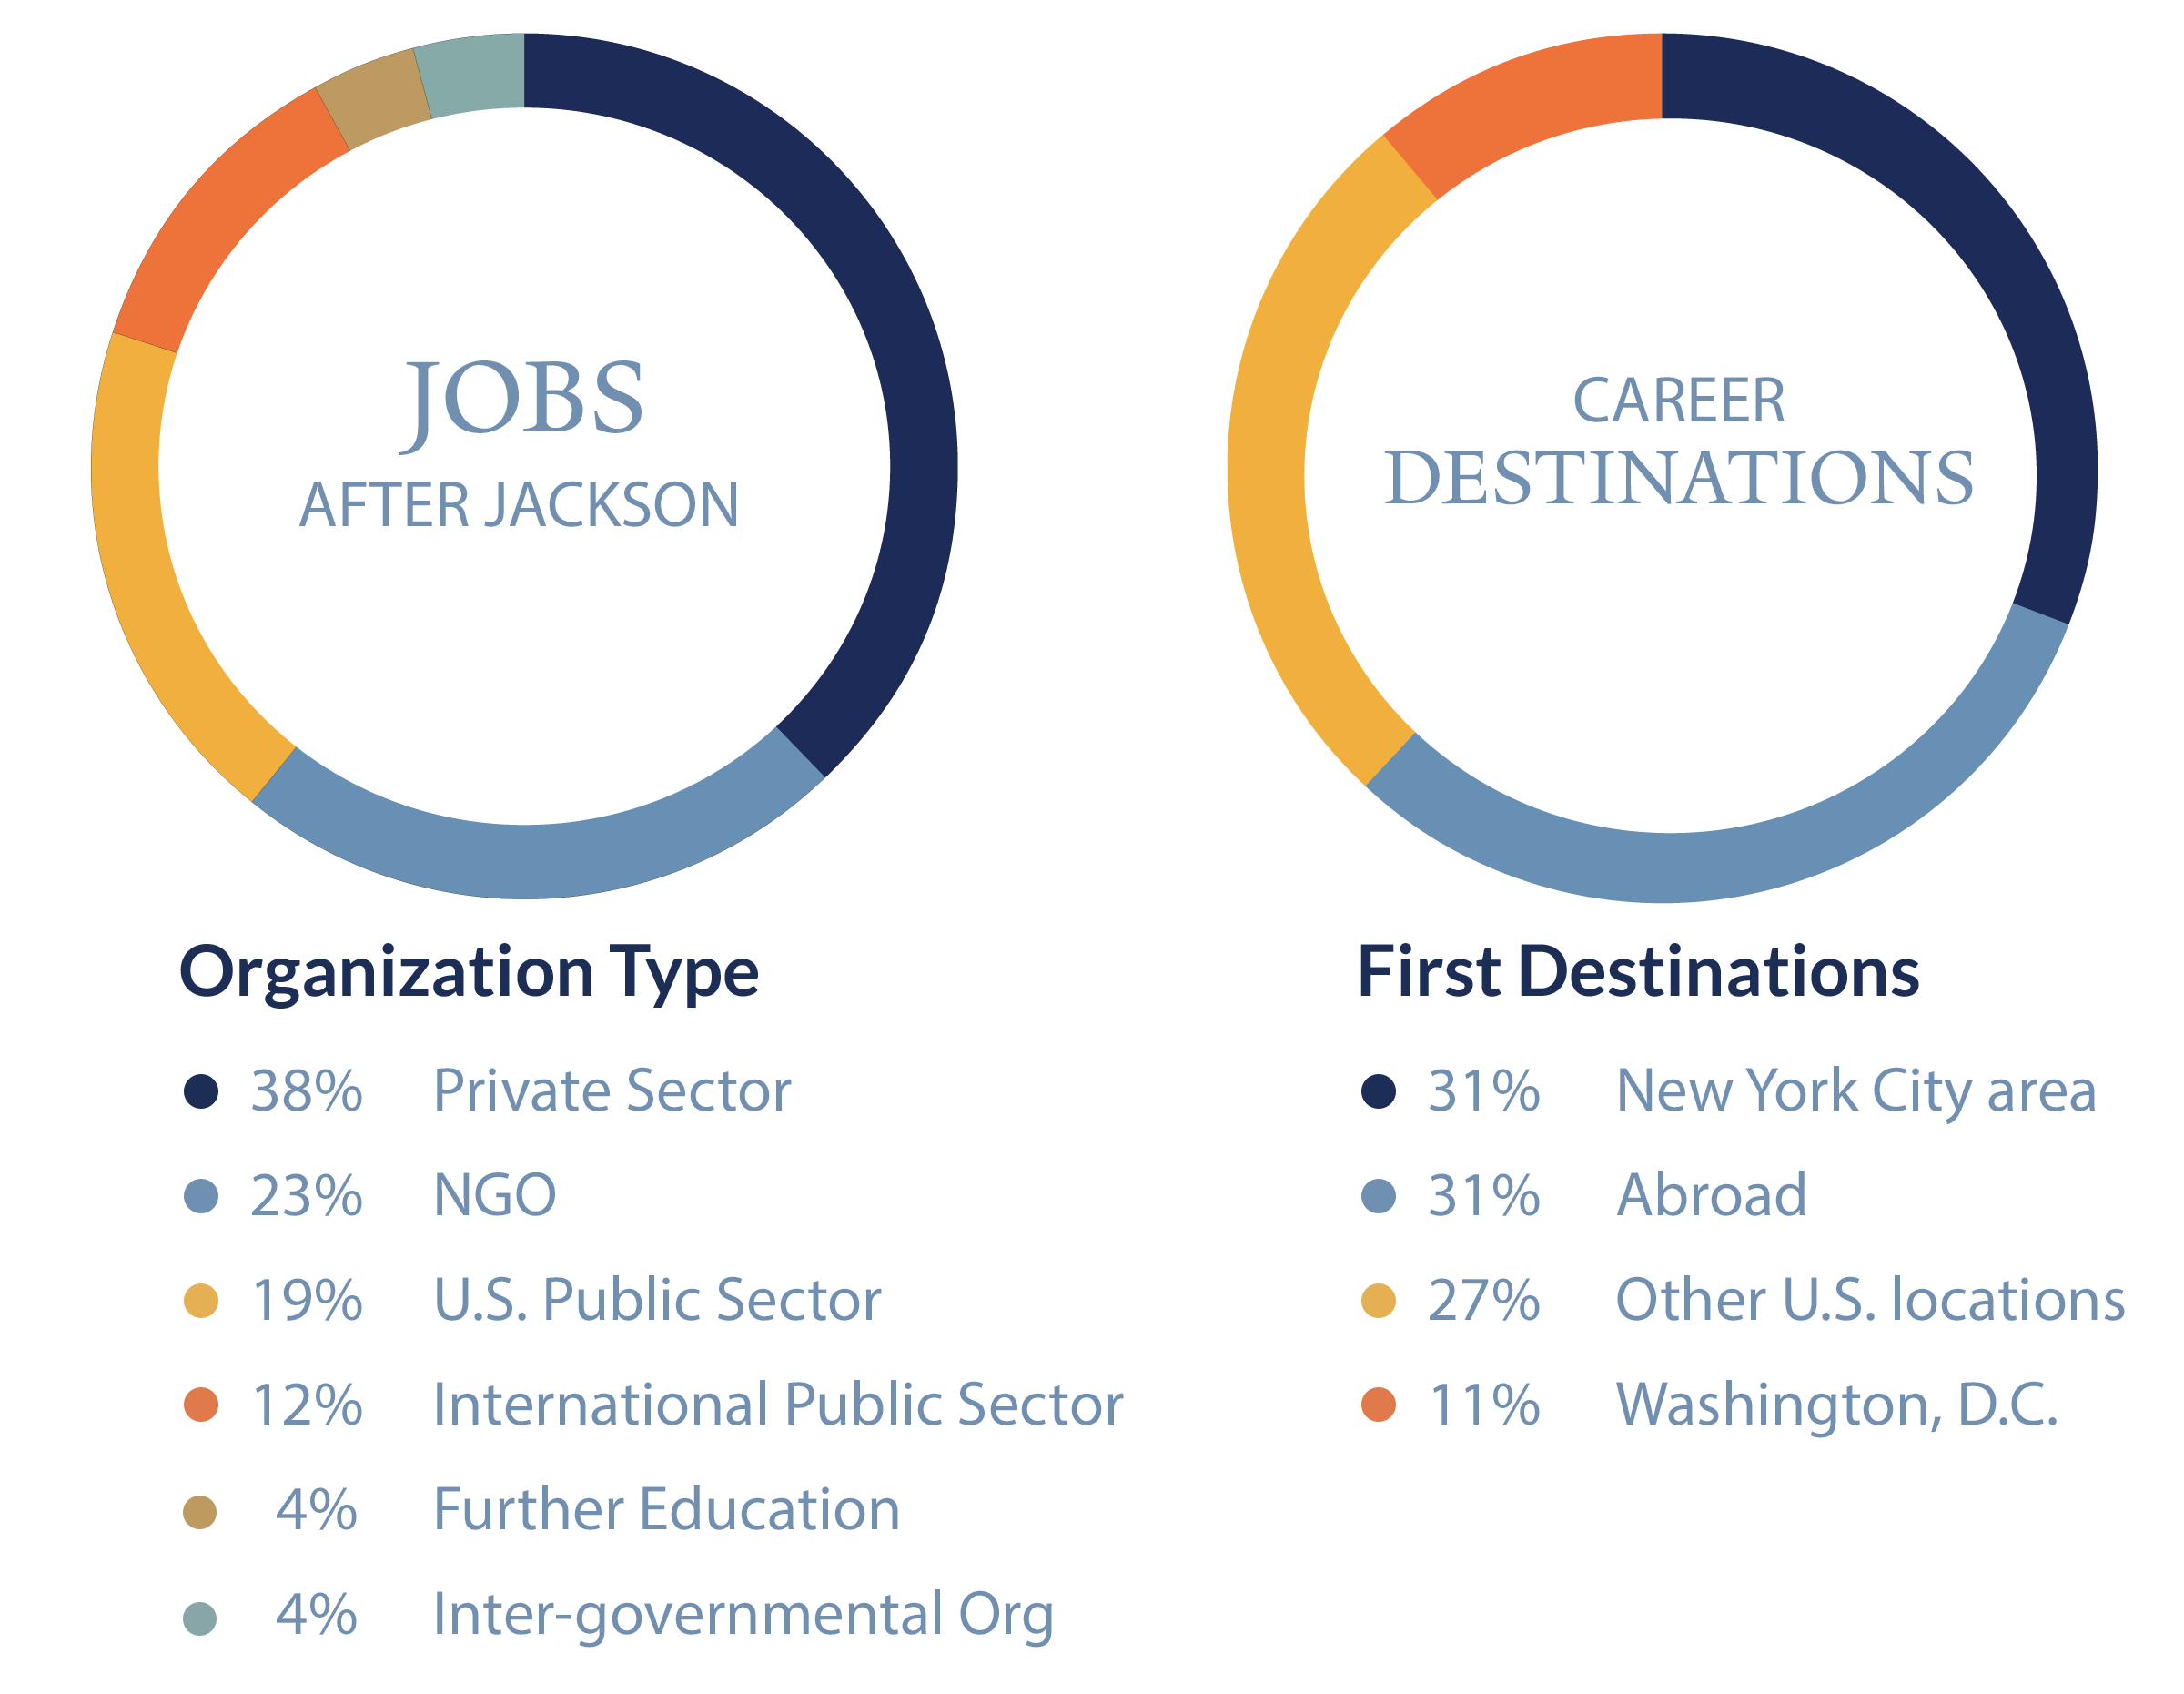 Jobs After Jackson Figures